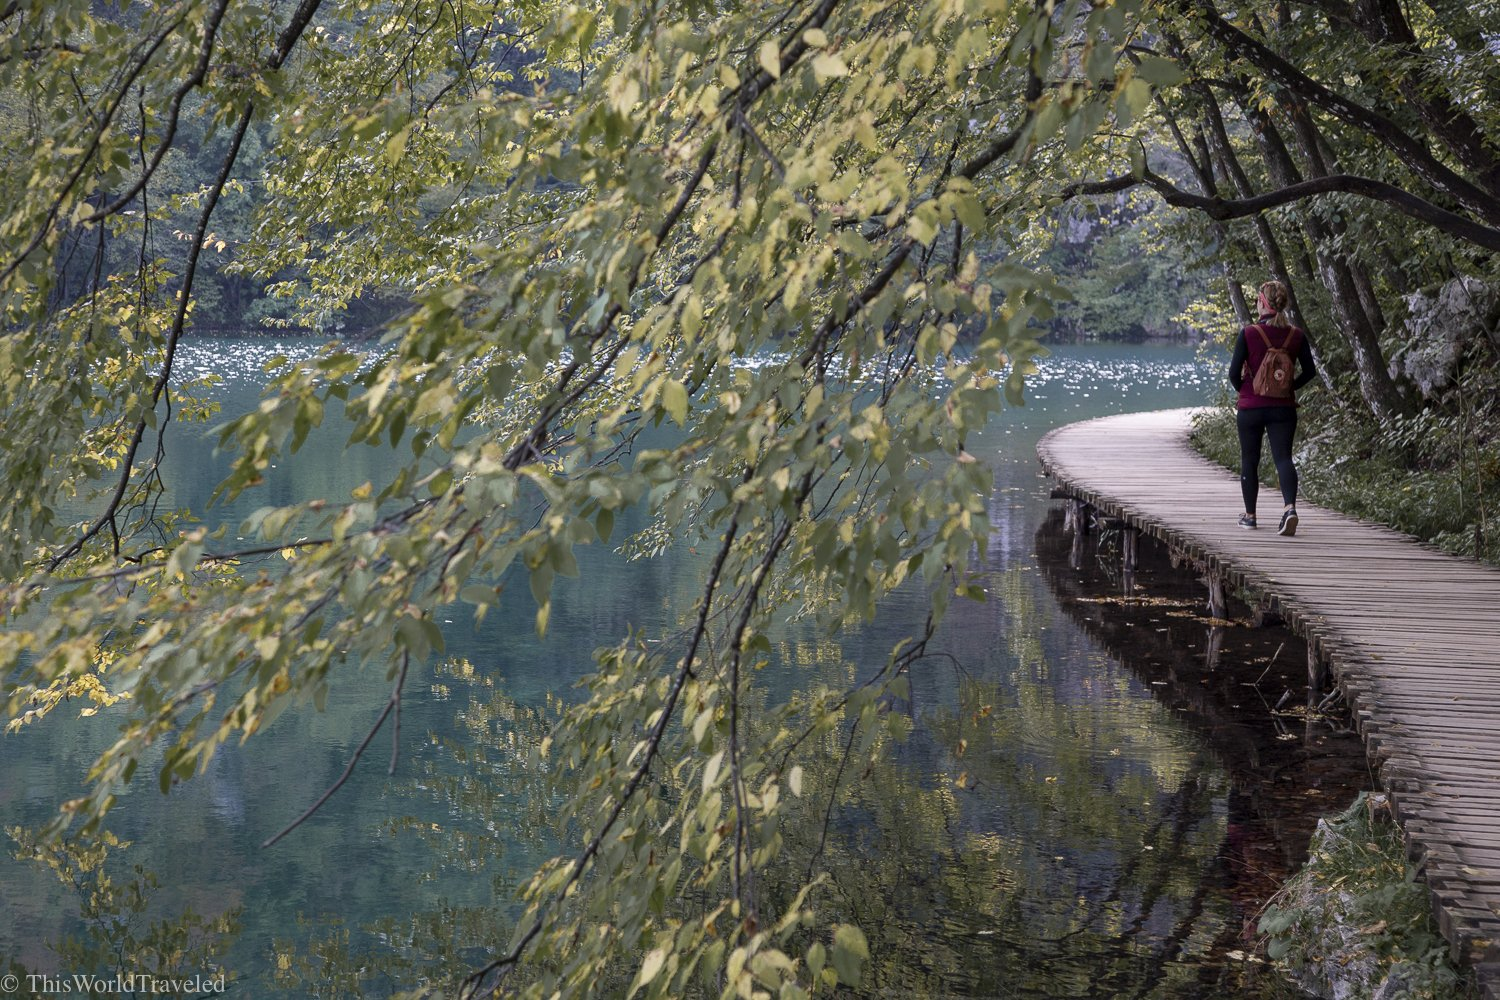 Girl walking on a boardwalk at Plitvice Lakes National Park in Croatia